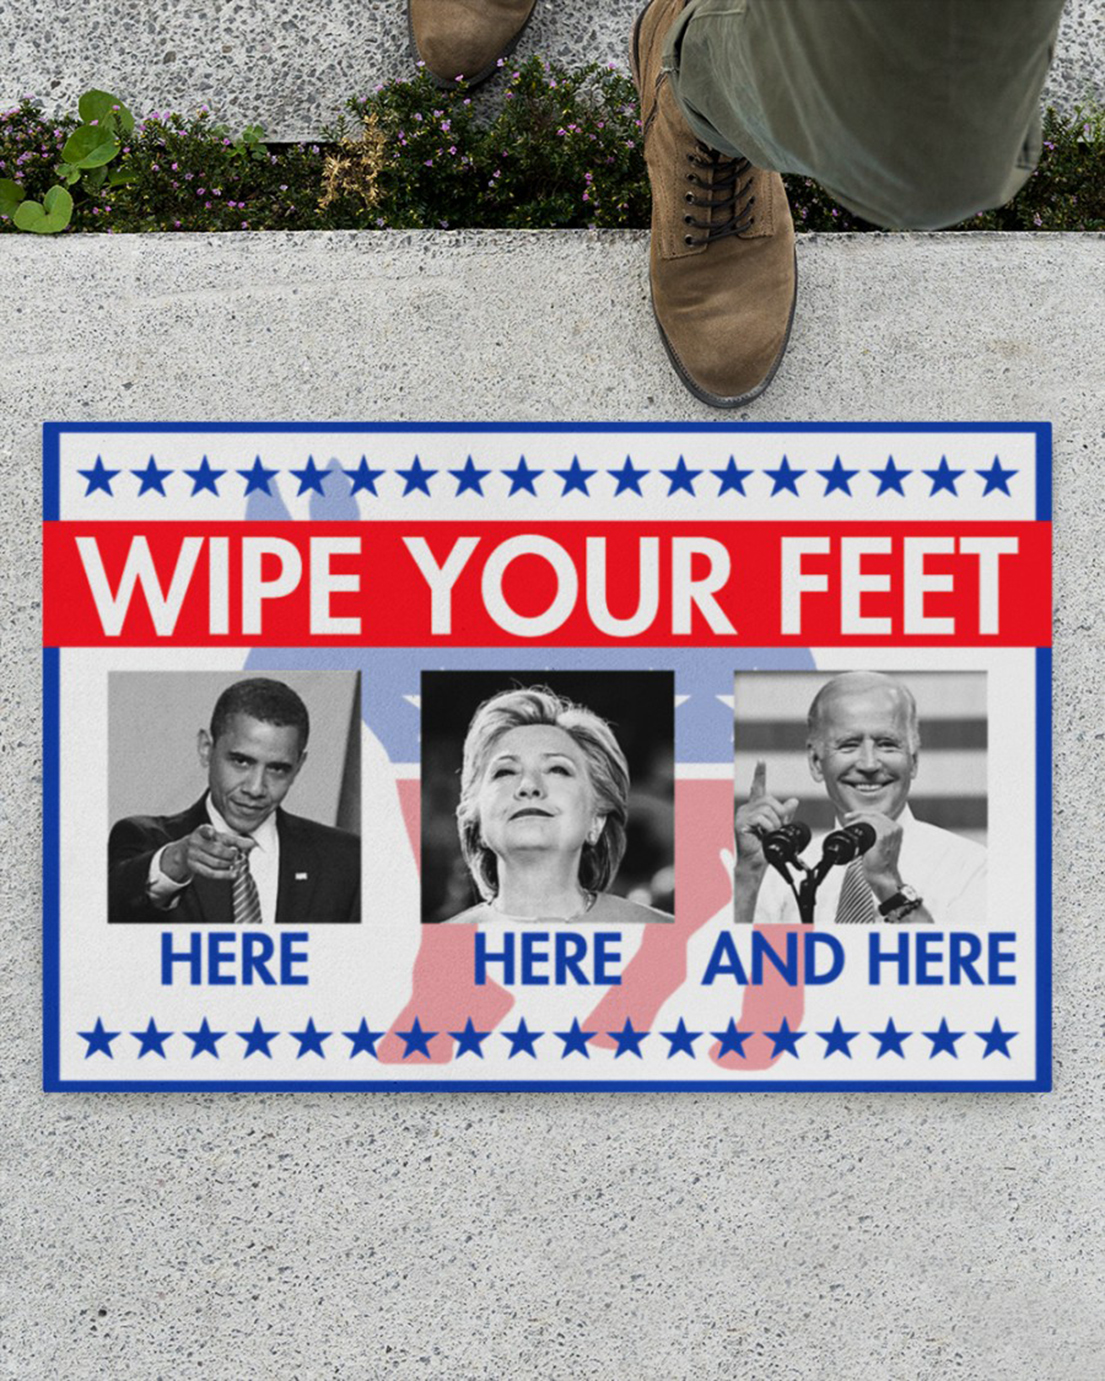 Barrack Obama Hillary Clinton Joe Biden Wipe your feet here here and here doormat - Picture 1